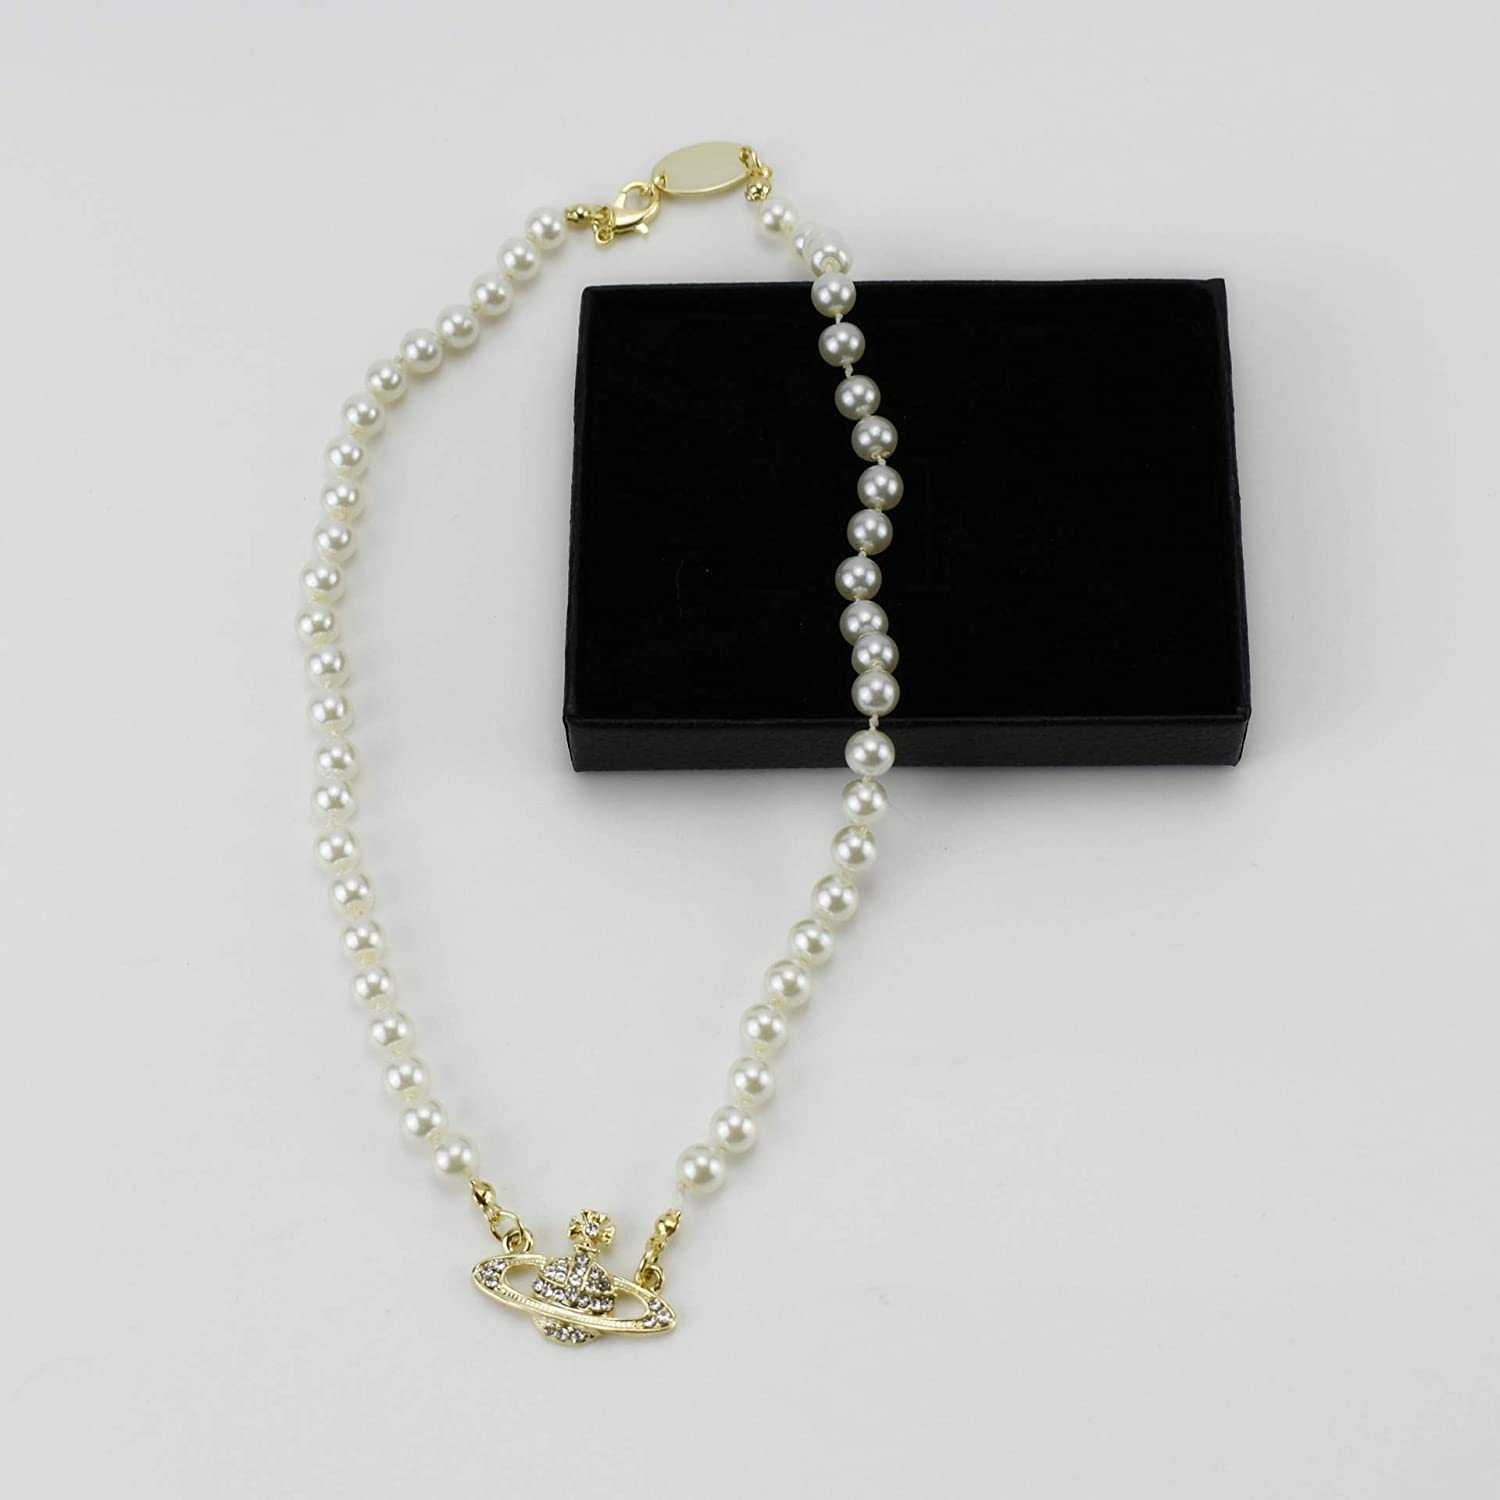 FENLDY Rhinestone Faux Planet Saturn Pearl Necklace for Women Jewelry, Fake Pearl Collar Pendant a Necklace Men with Charm for Girls Y2k Jewelry Ladies' Wedding Pearl Bead Chain Crystal Choker